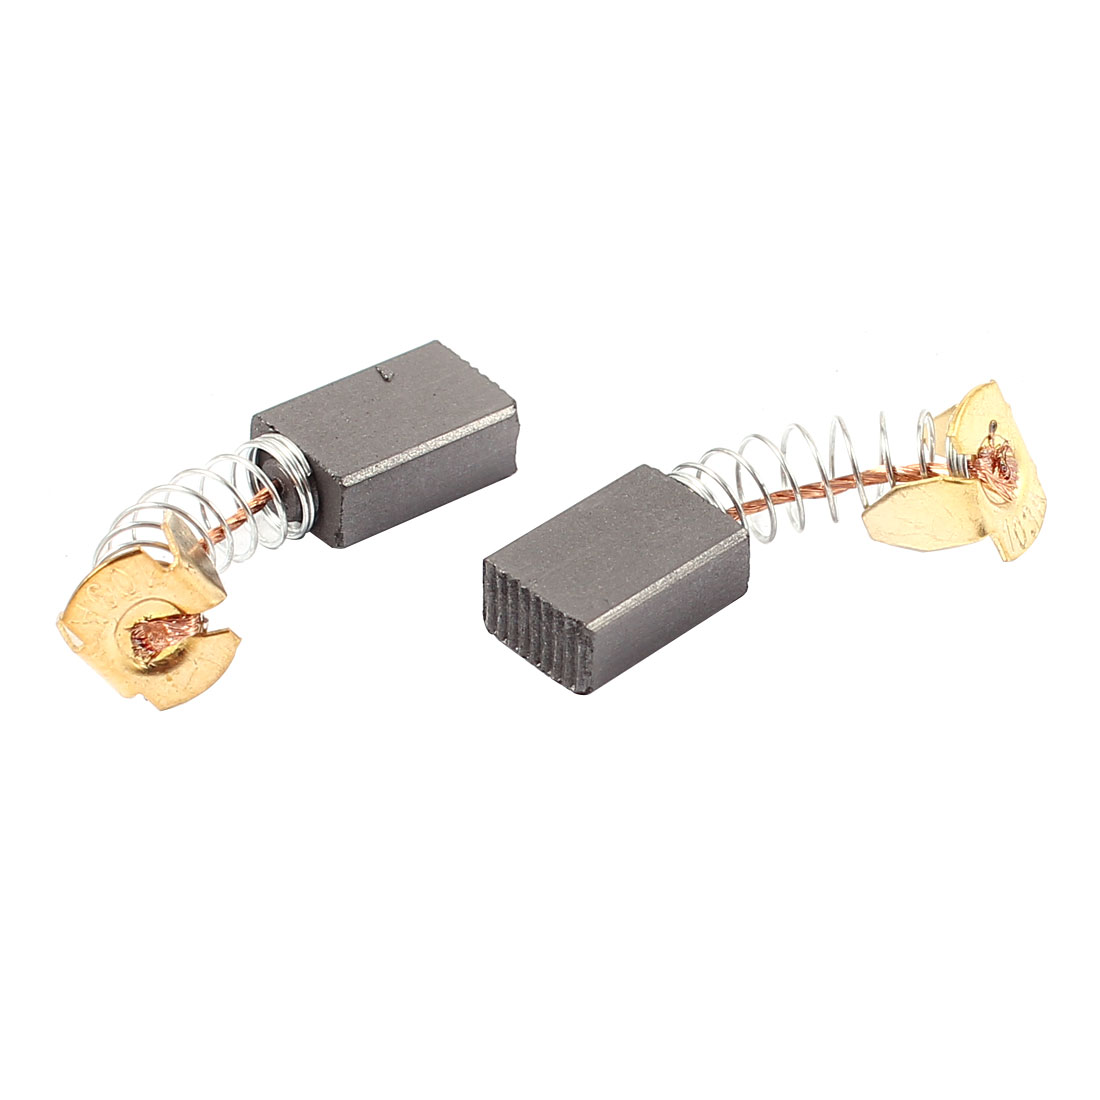 2Pcs Carbon Electric Motor Brushes 15mm x 10mm x 6mm For Drill Screwdriver